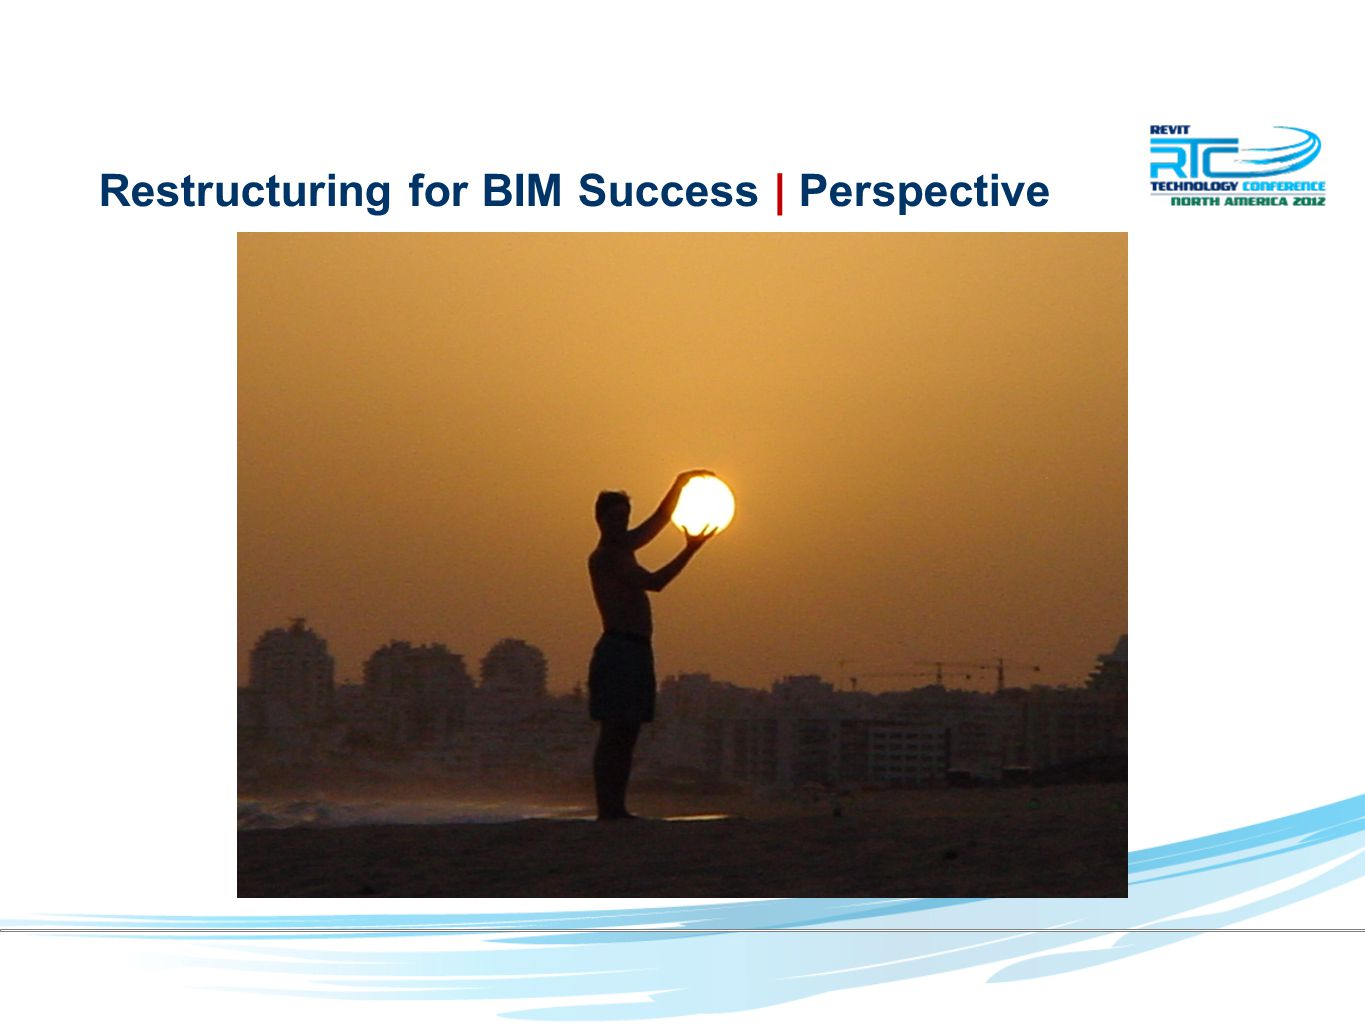 Restructuring for BIM Success | Perspective